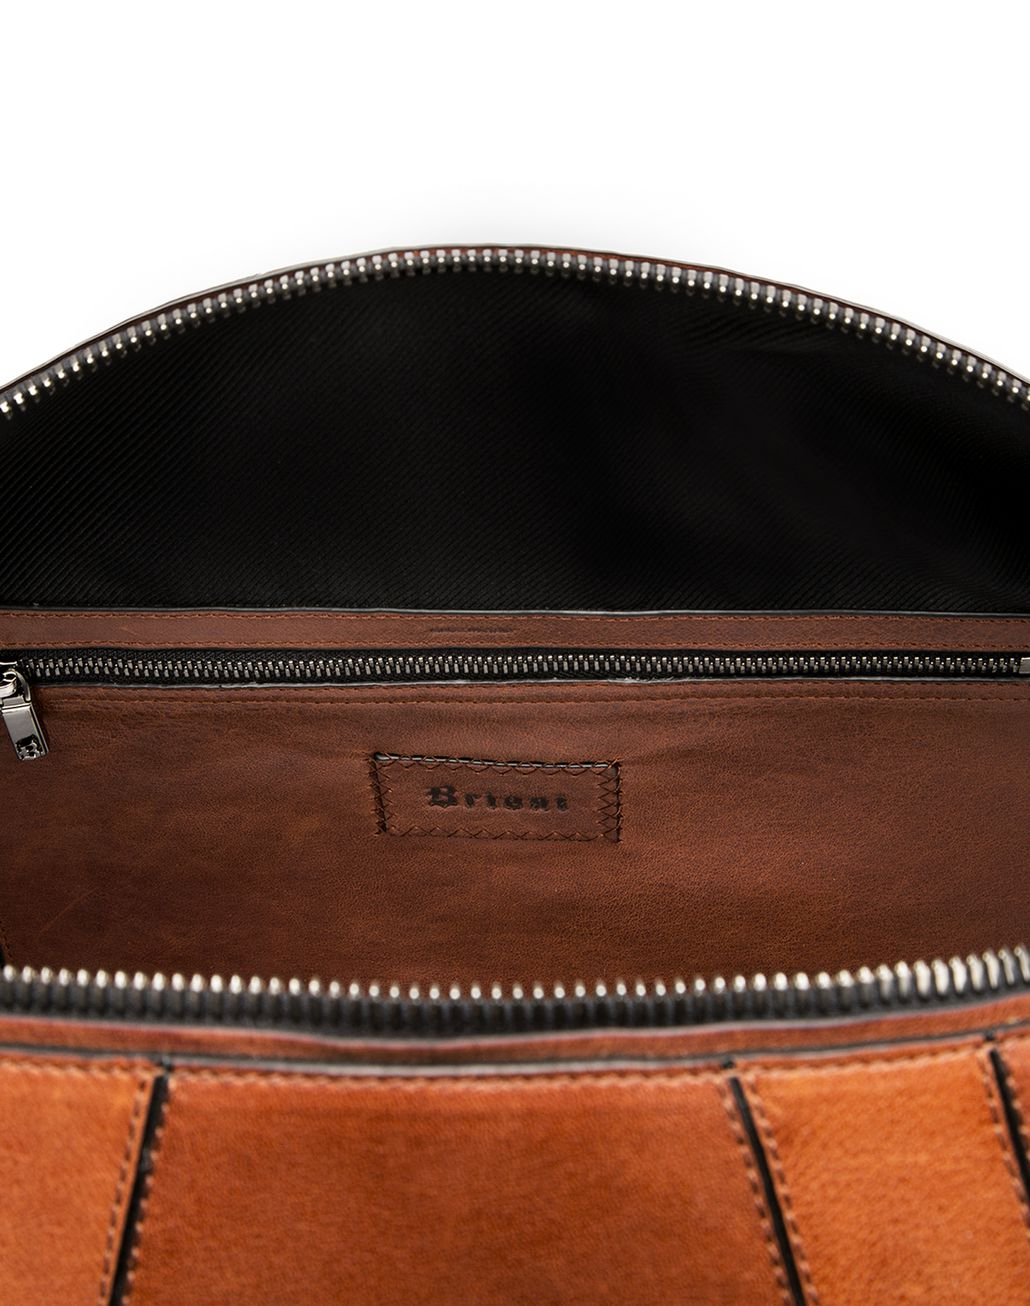 BRIONI Tobacco Brown Travel Bag in Calfskin Bag Man a